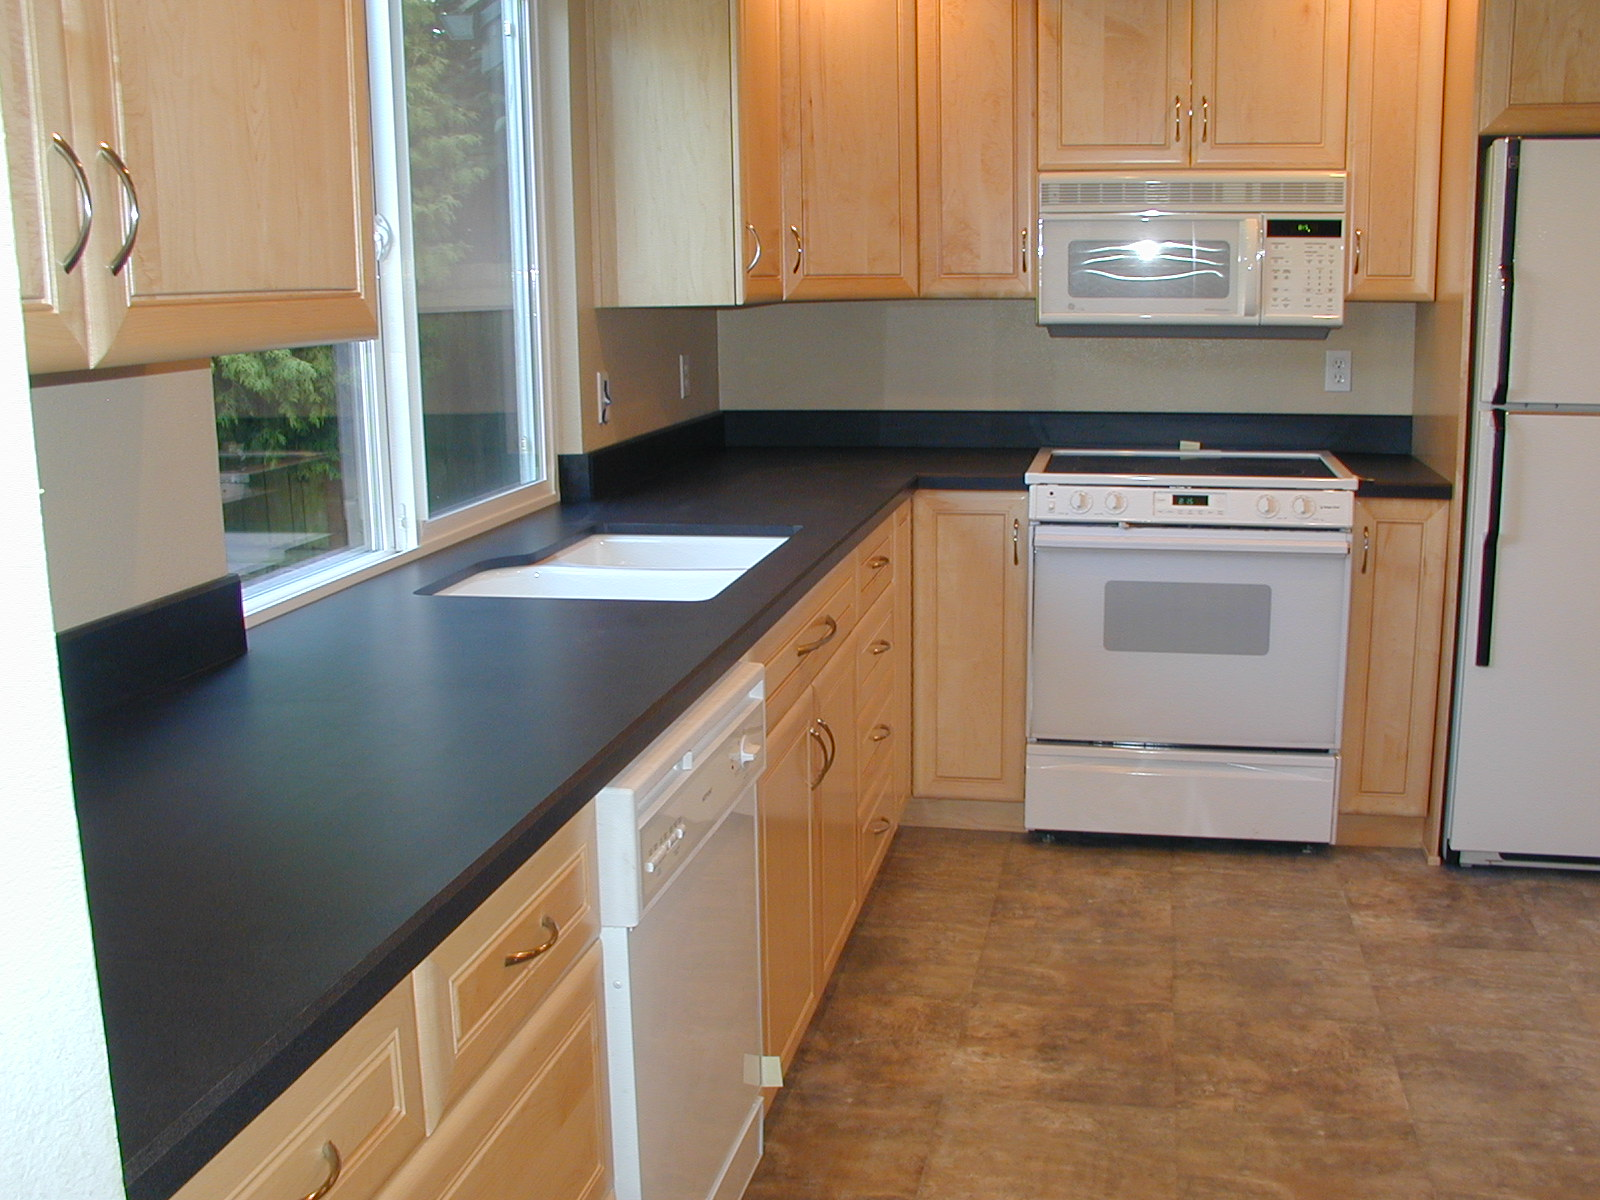 seattlecountertops.com